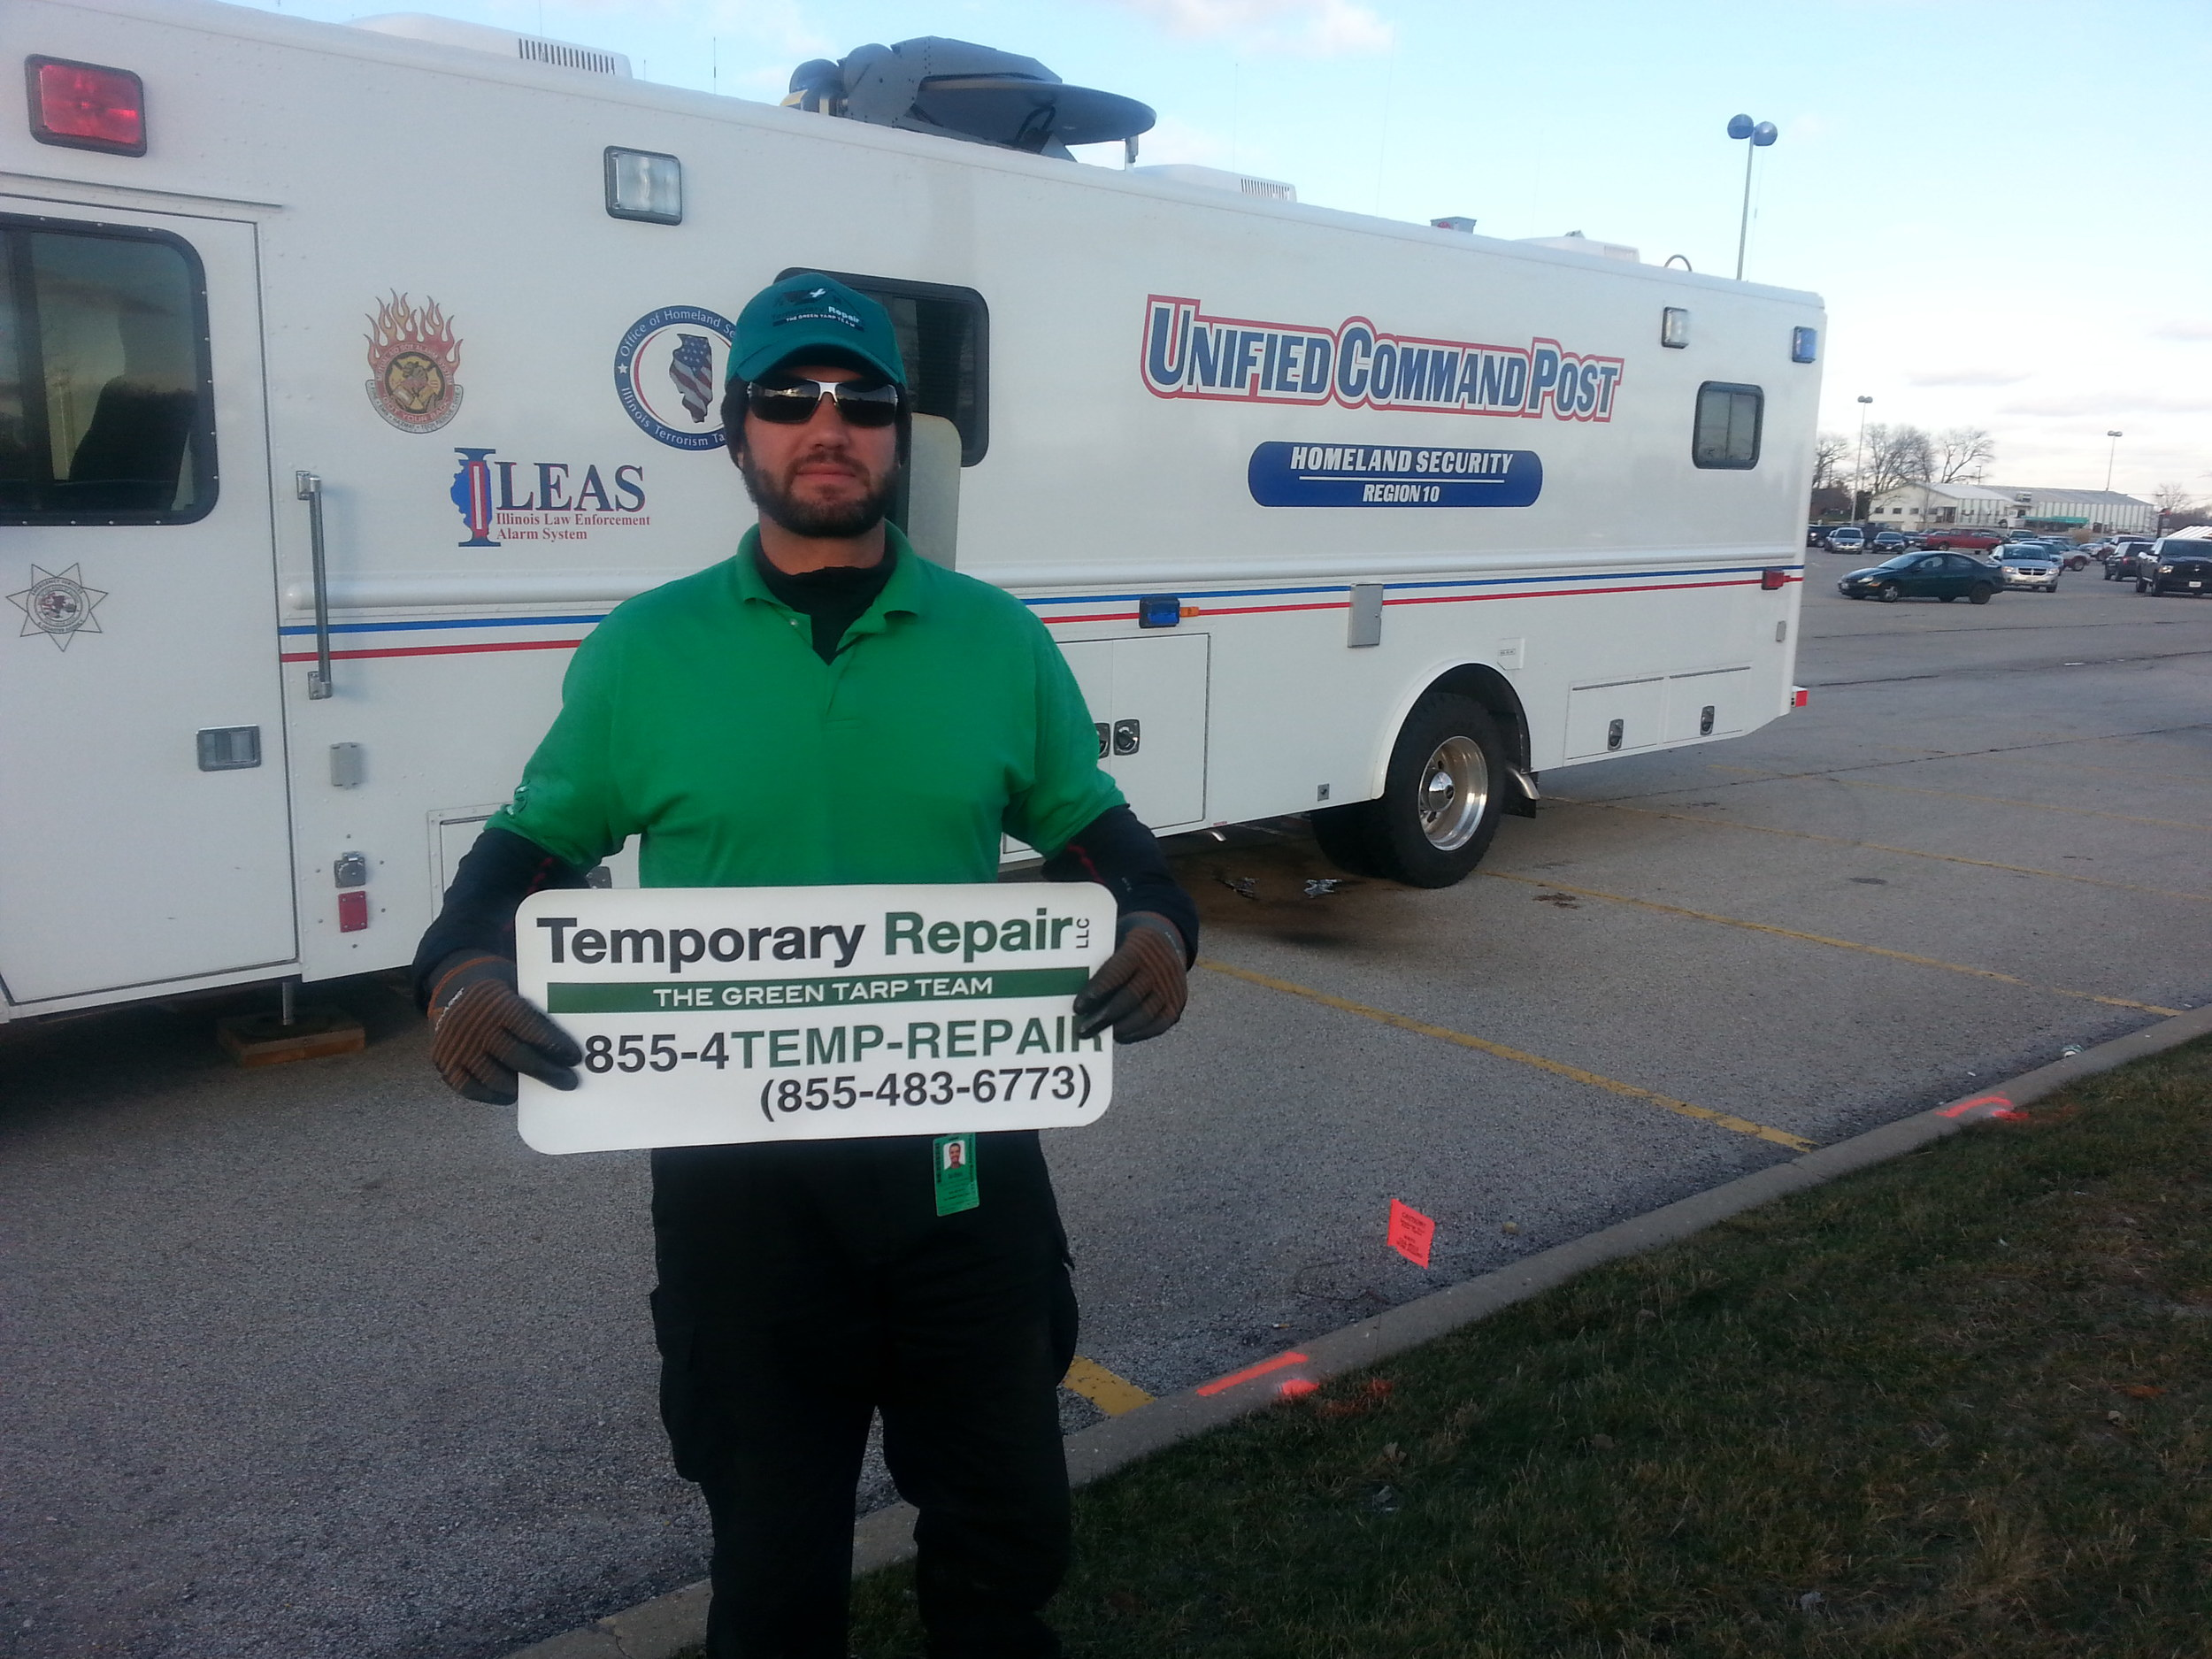 Temporary Repair Team Member in front of Homeland Security Van in Washington, IL